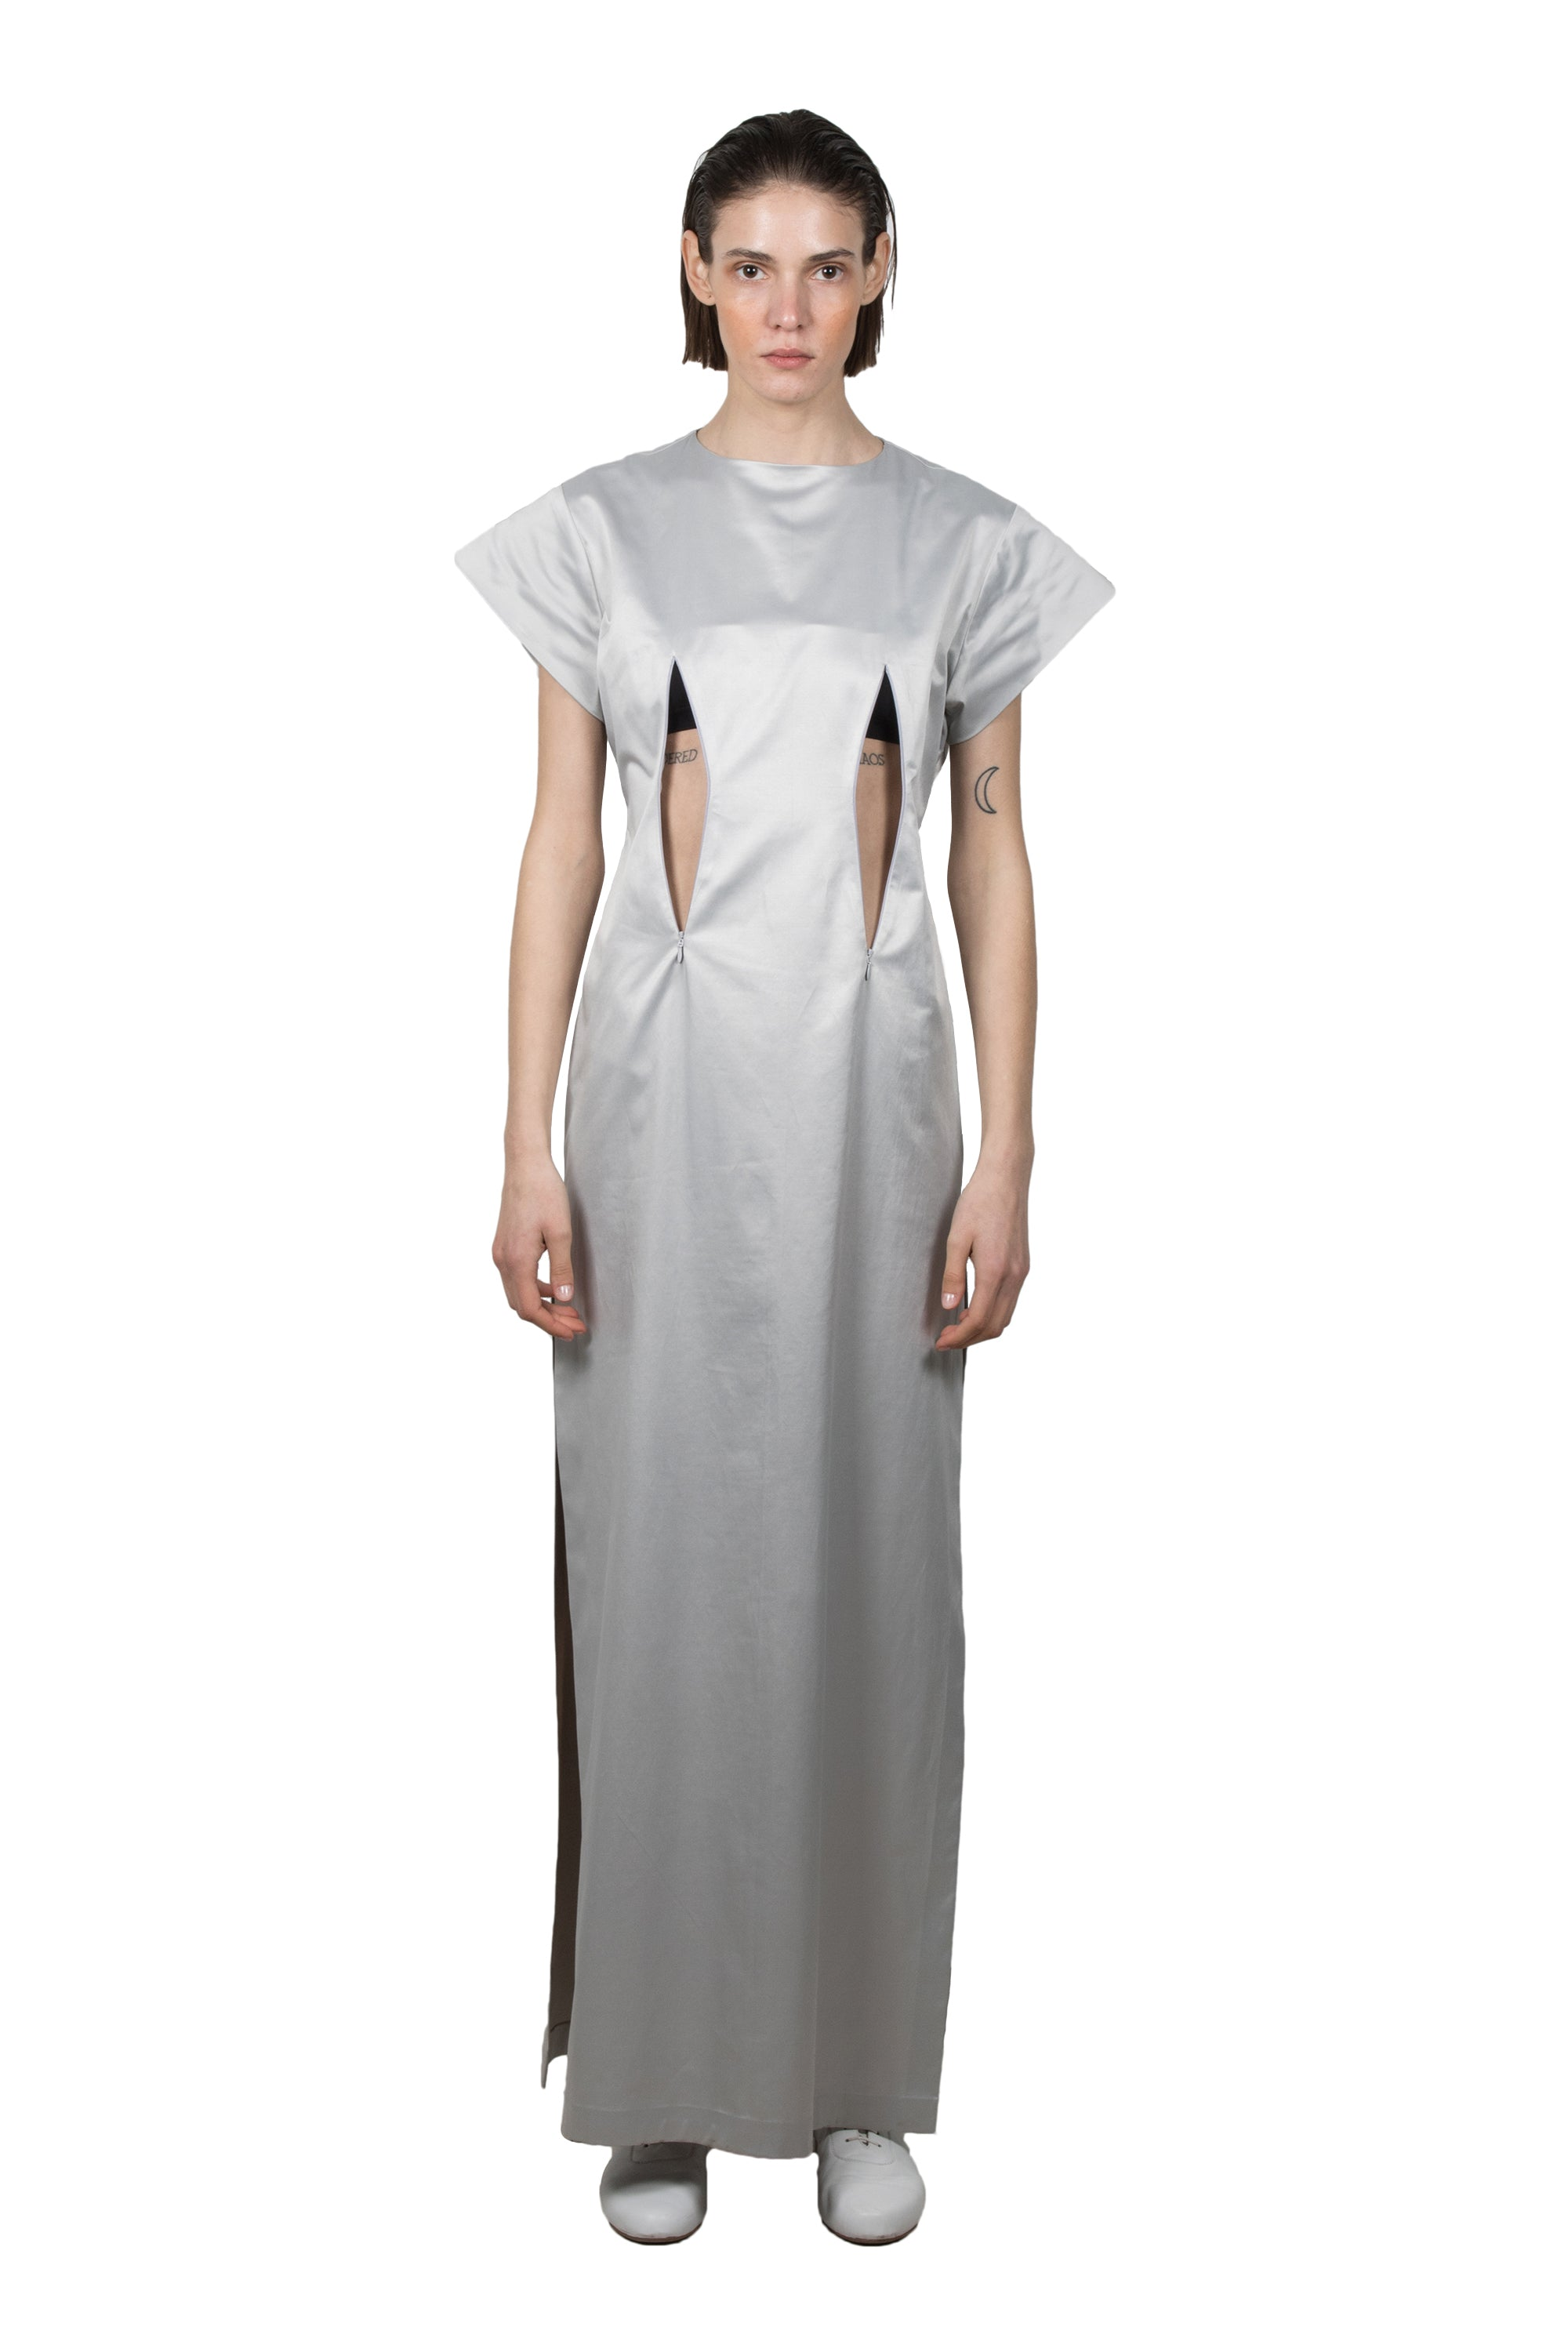 Silver Slashed Short-sleeved Dress - Ludus Agender Label